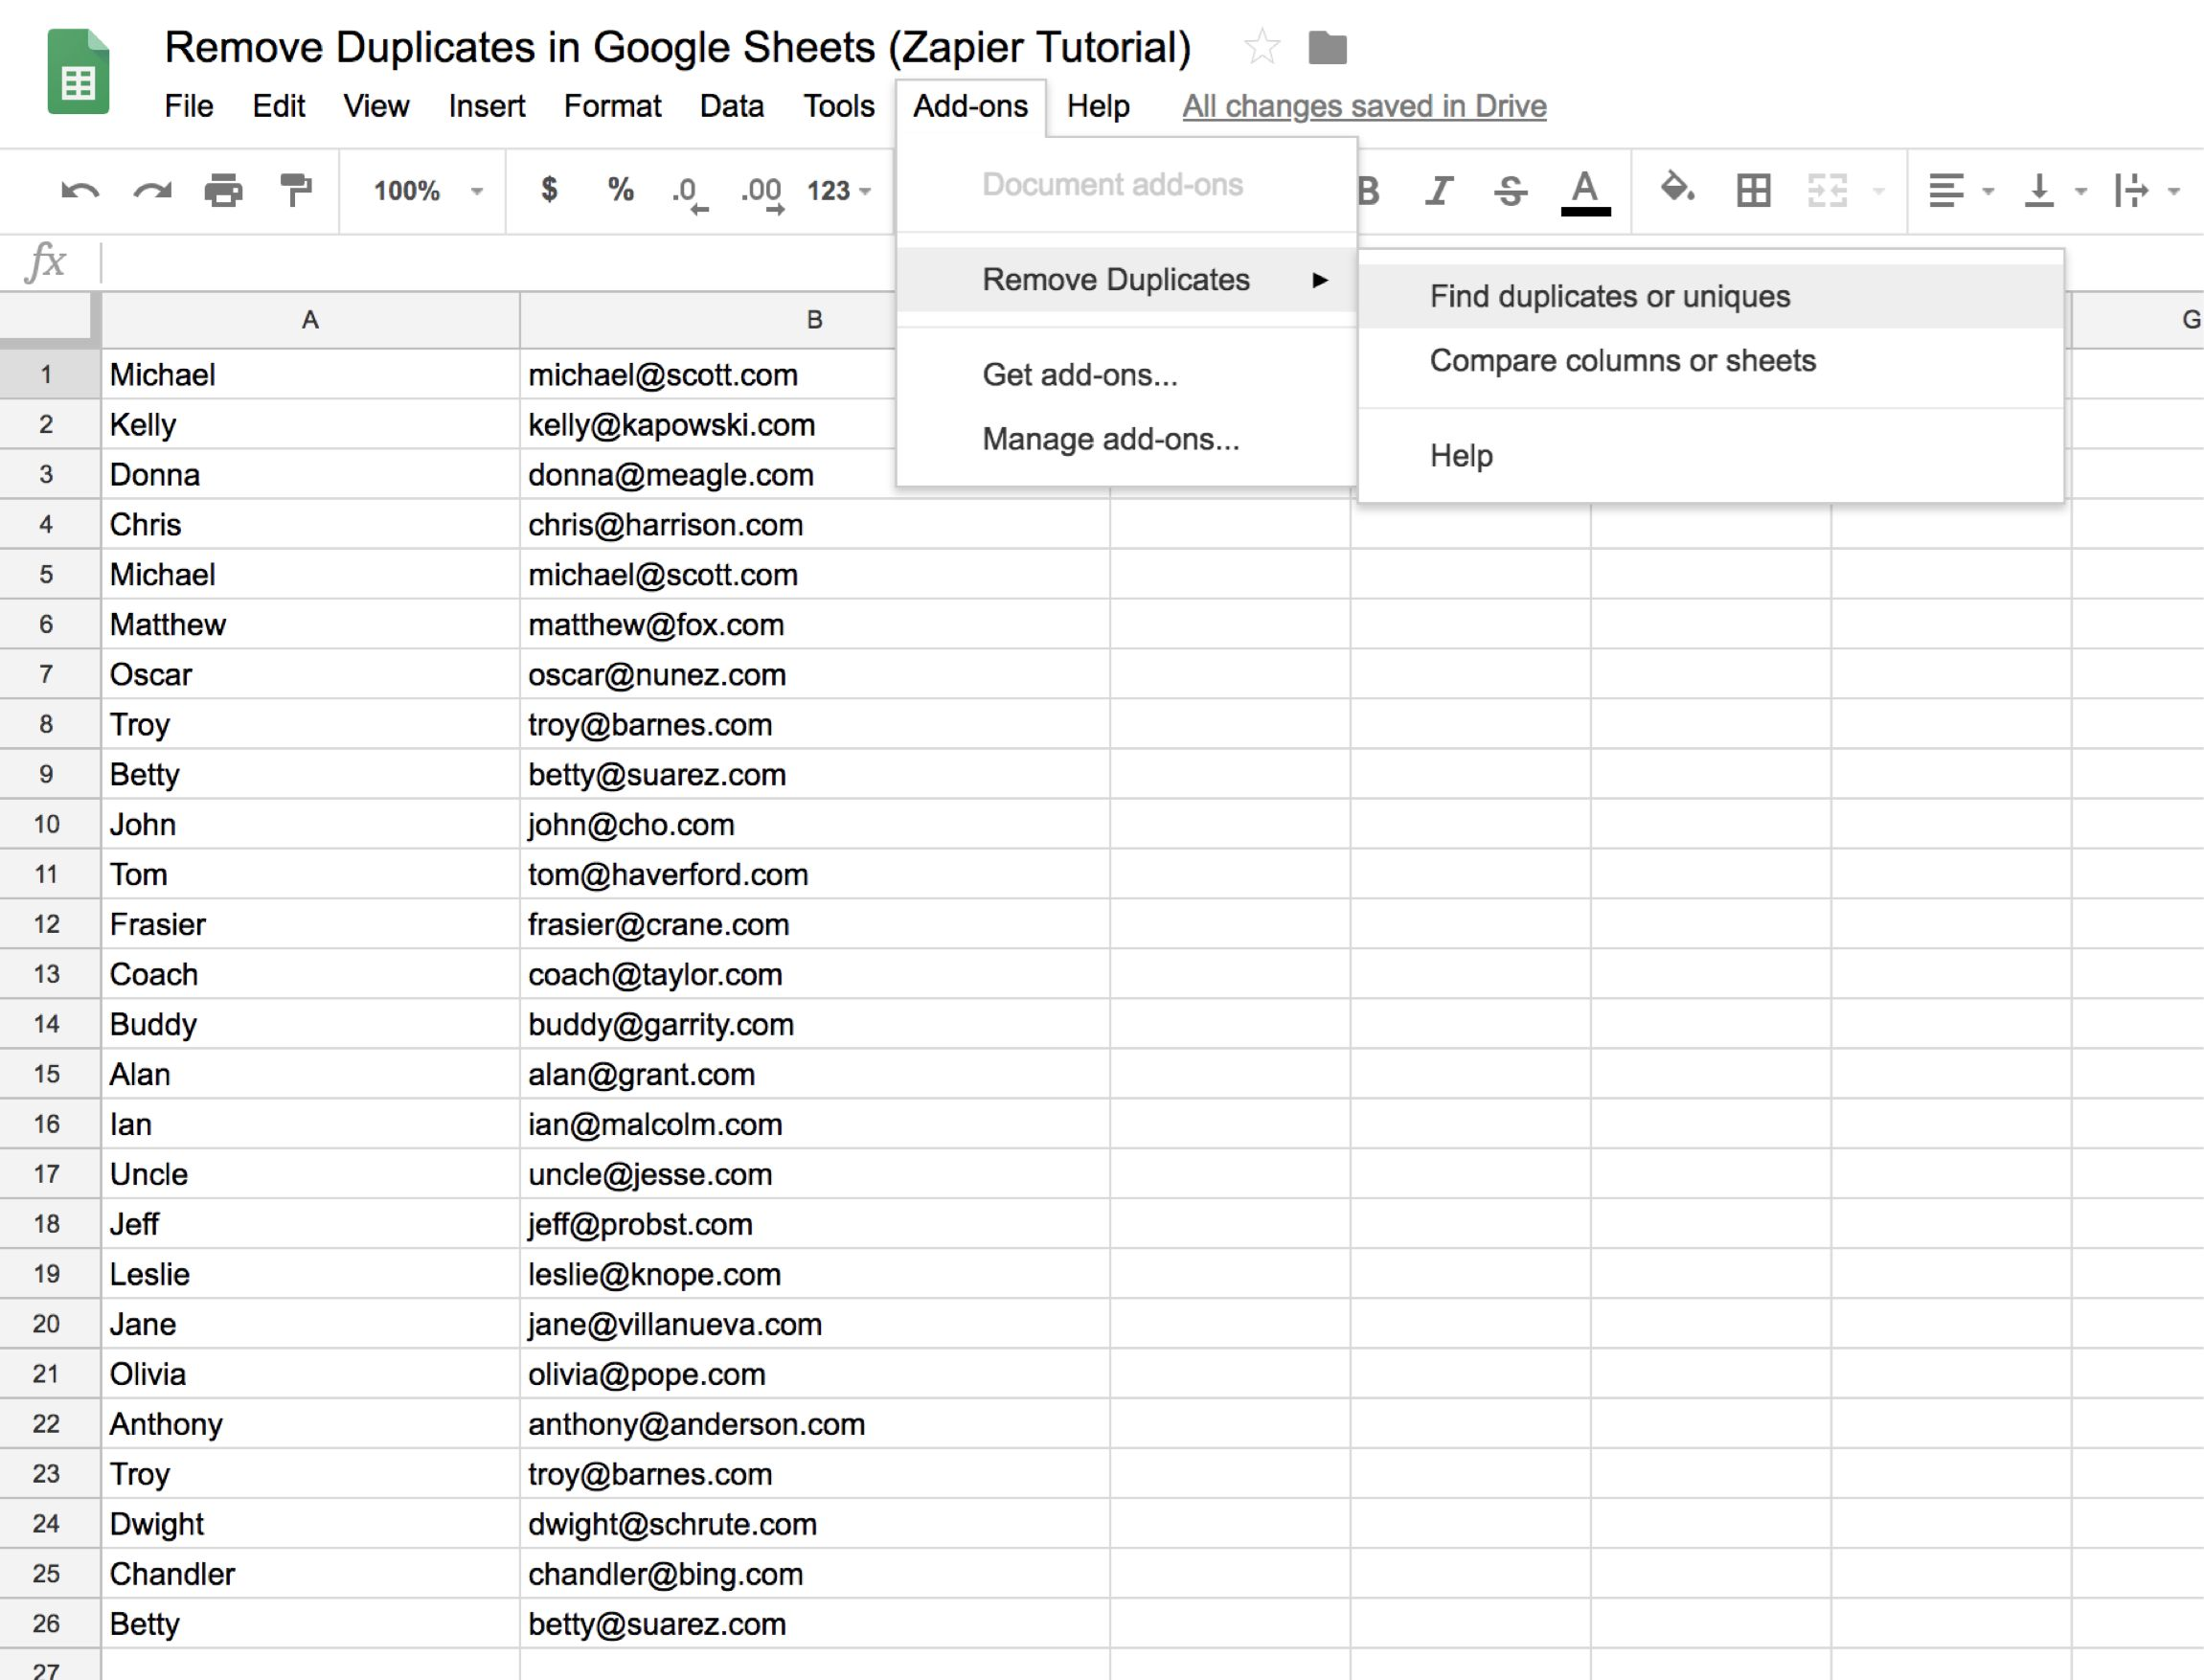 How to Remove Duplicates in Google Sheets - Google Sheets